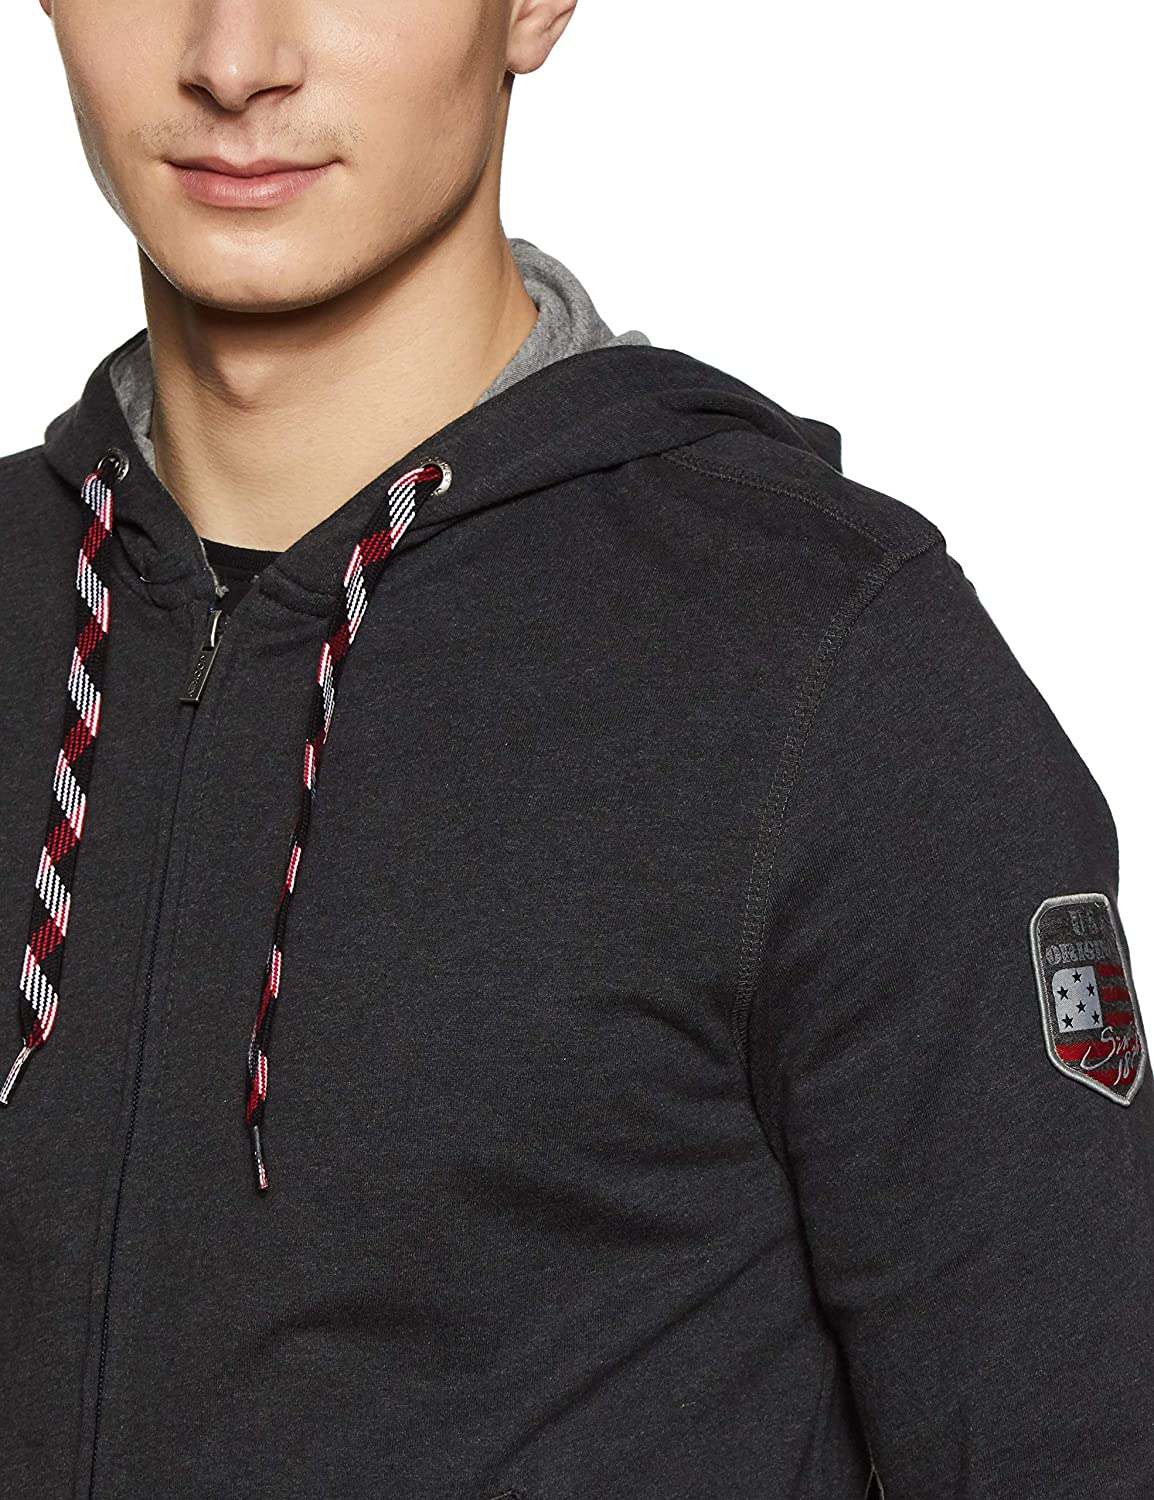 7bf594f9727 Jockey Men's Cotton Zip Thru Hoodie: Amazon.in: Clothing & Accessories